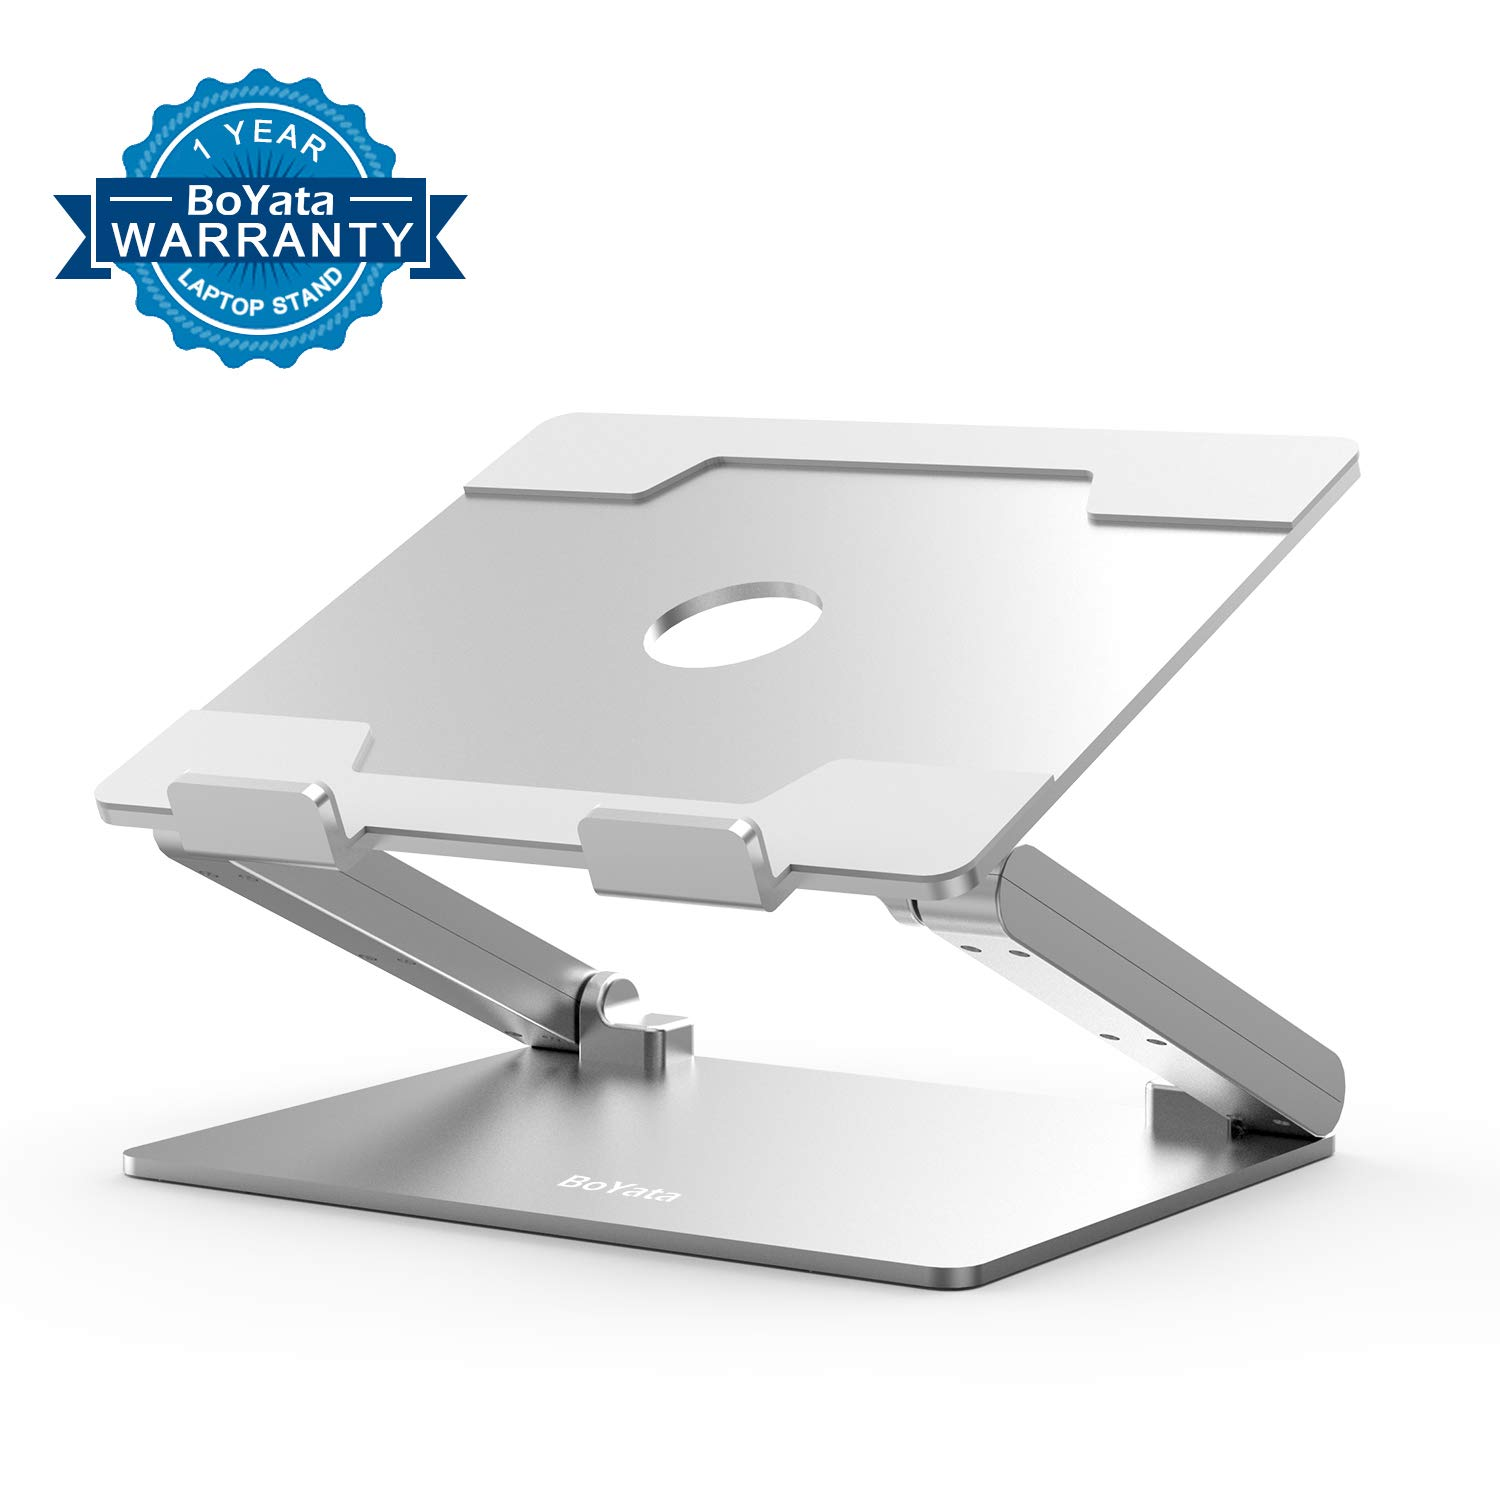 Laptop Stand, Boyata Laptop Holder: Multi-Angle Stand with Heat-Vent to Elevate Laptop, Adjustable Notebook Stand for Laptop (up to 17 inches) Including MacBook Pro/Air, Surface Laptop,Toshiba, HP by Boyata